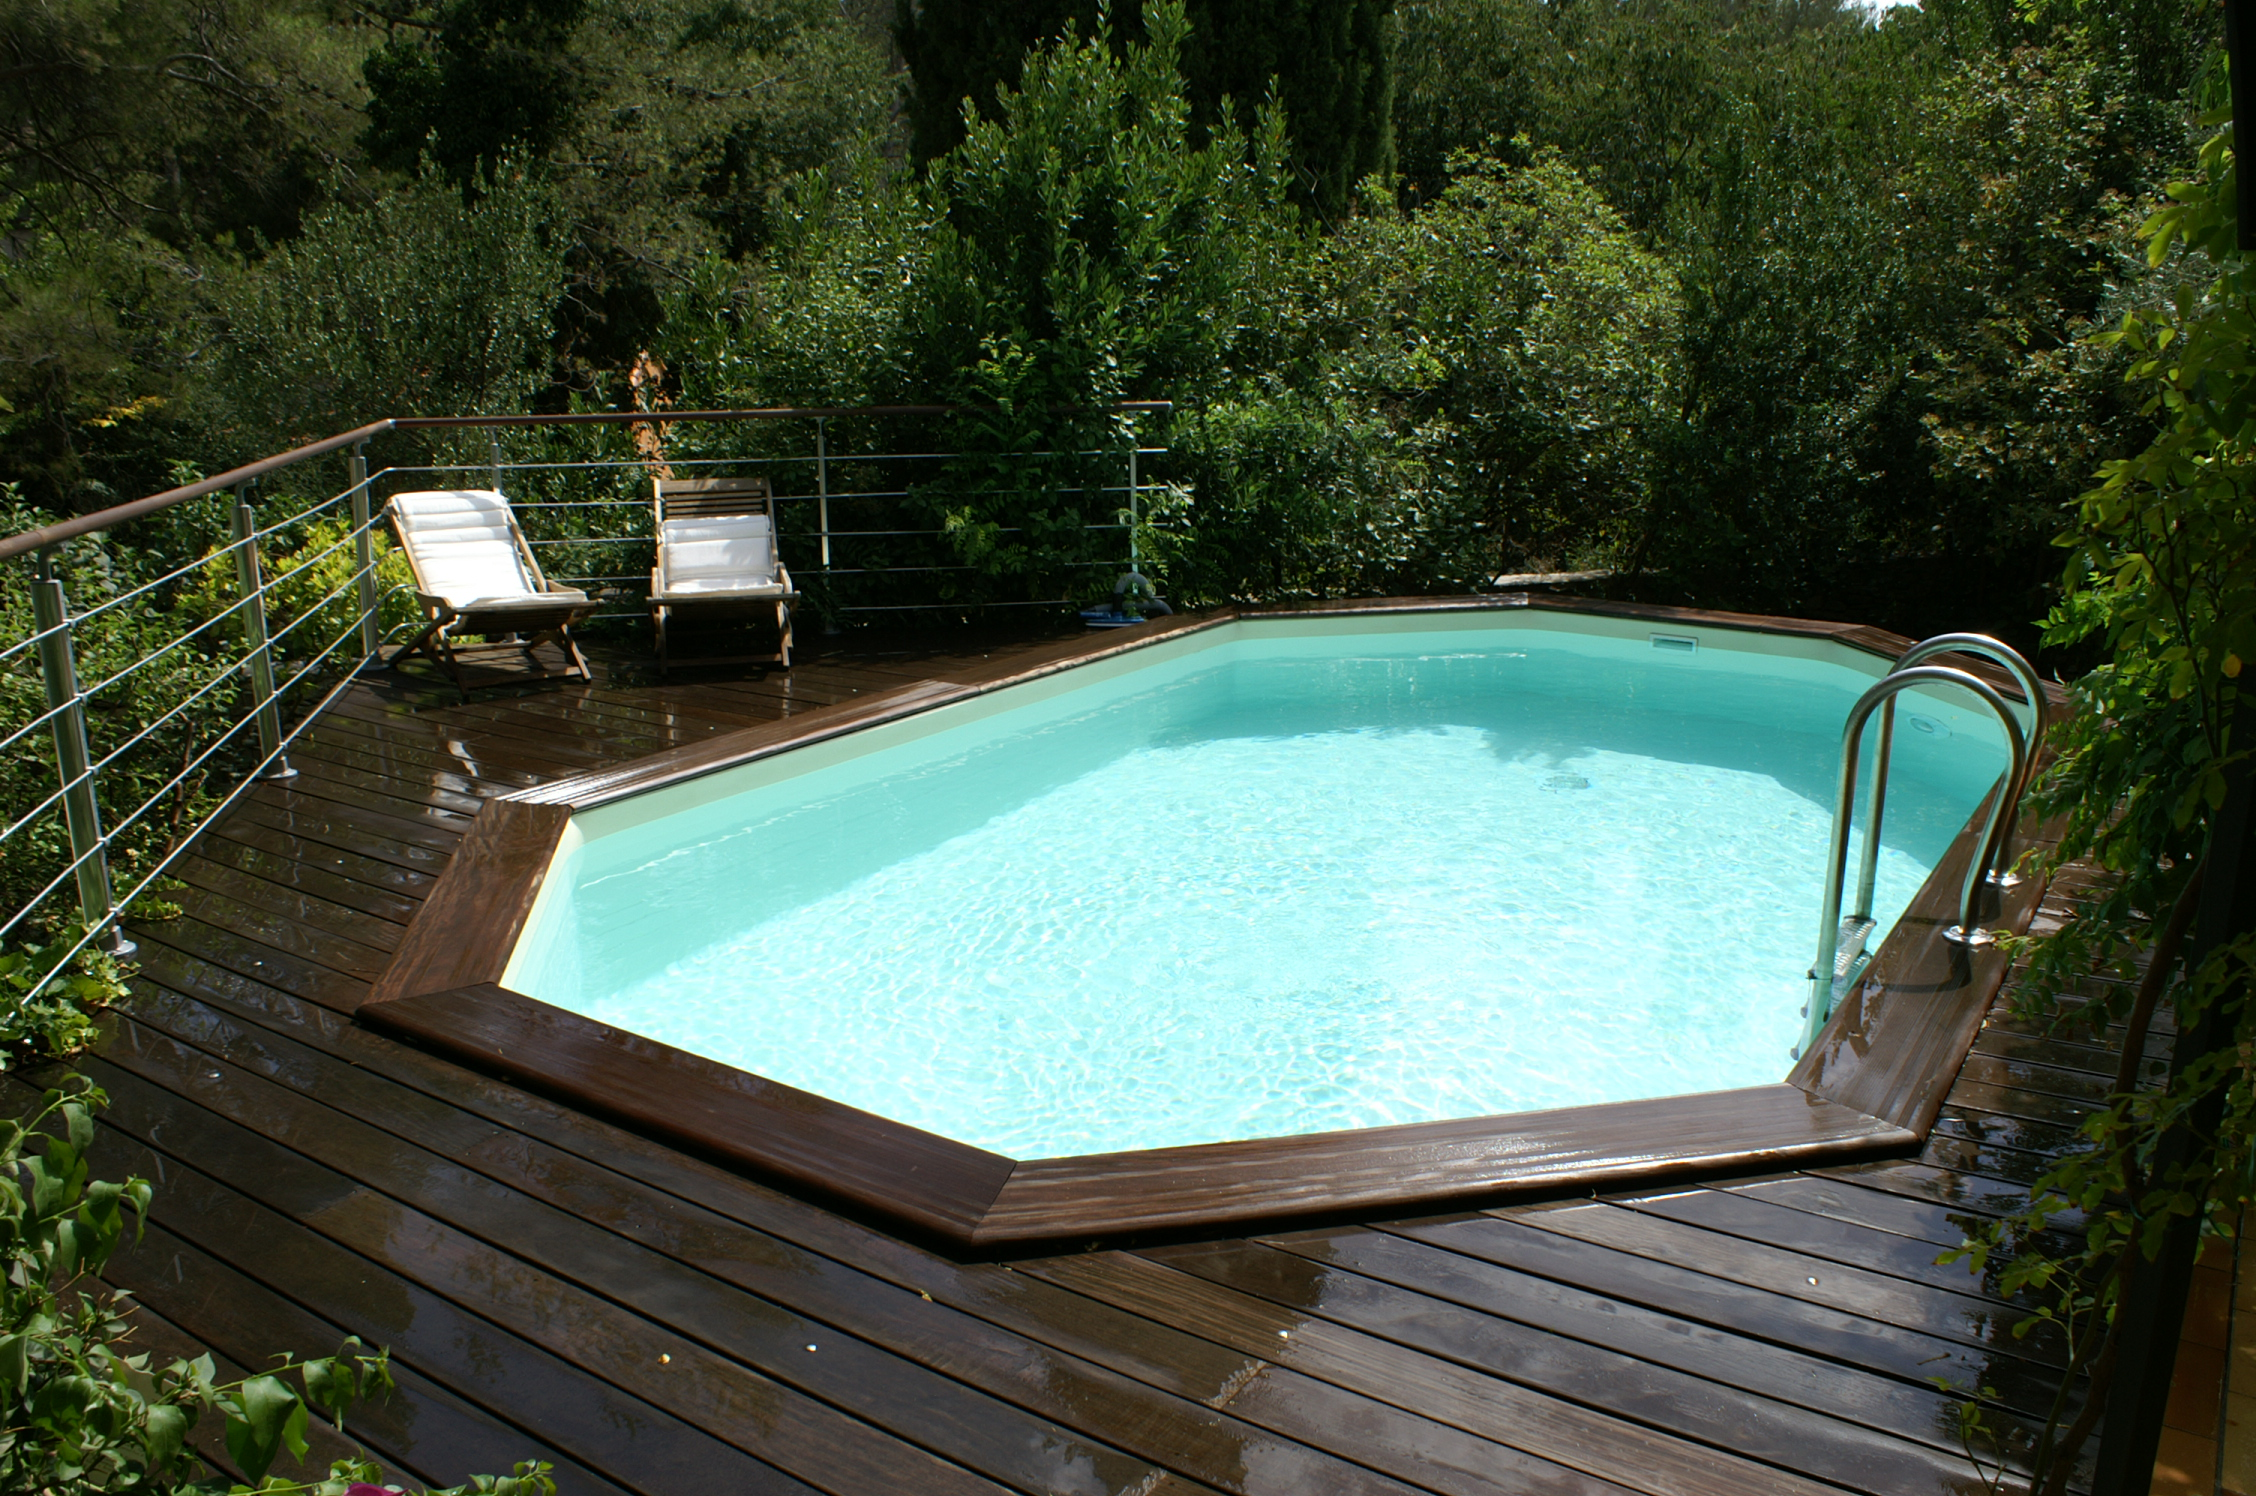 Piscine octogonale bois hors sol trendy with piscine for Robot de piscine hors sol